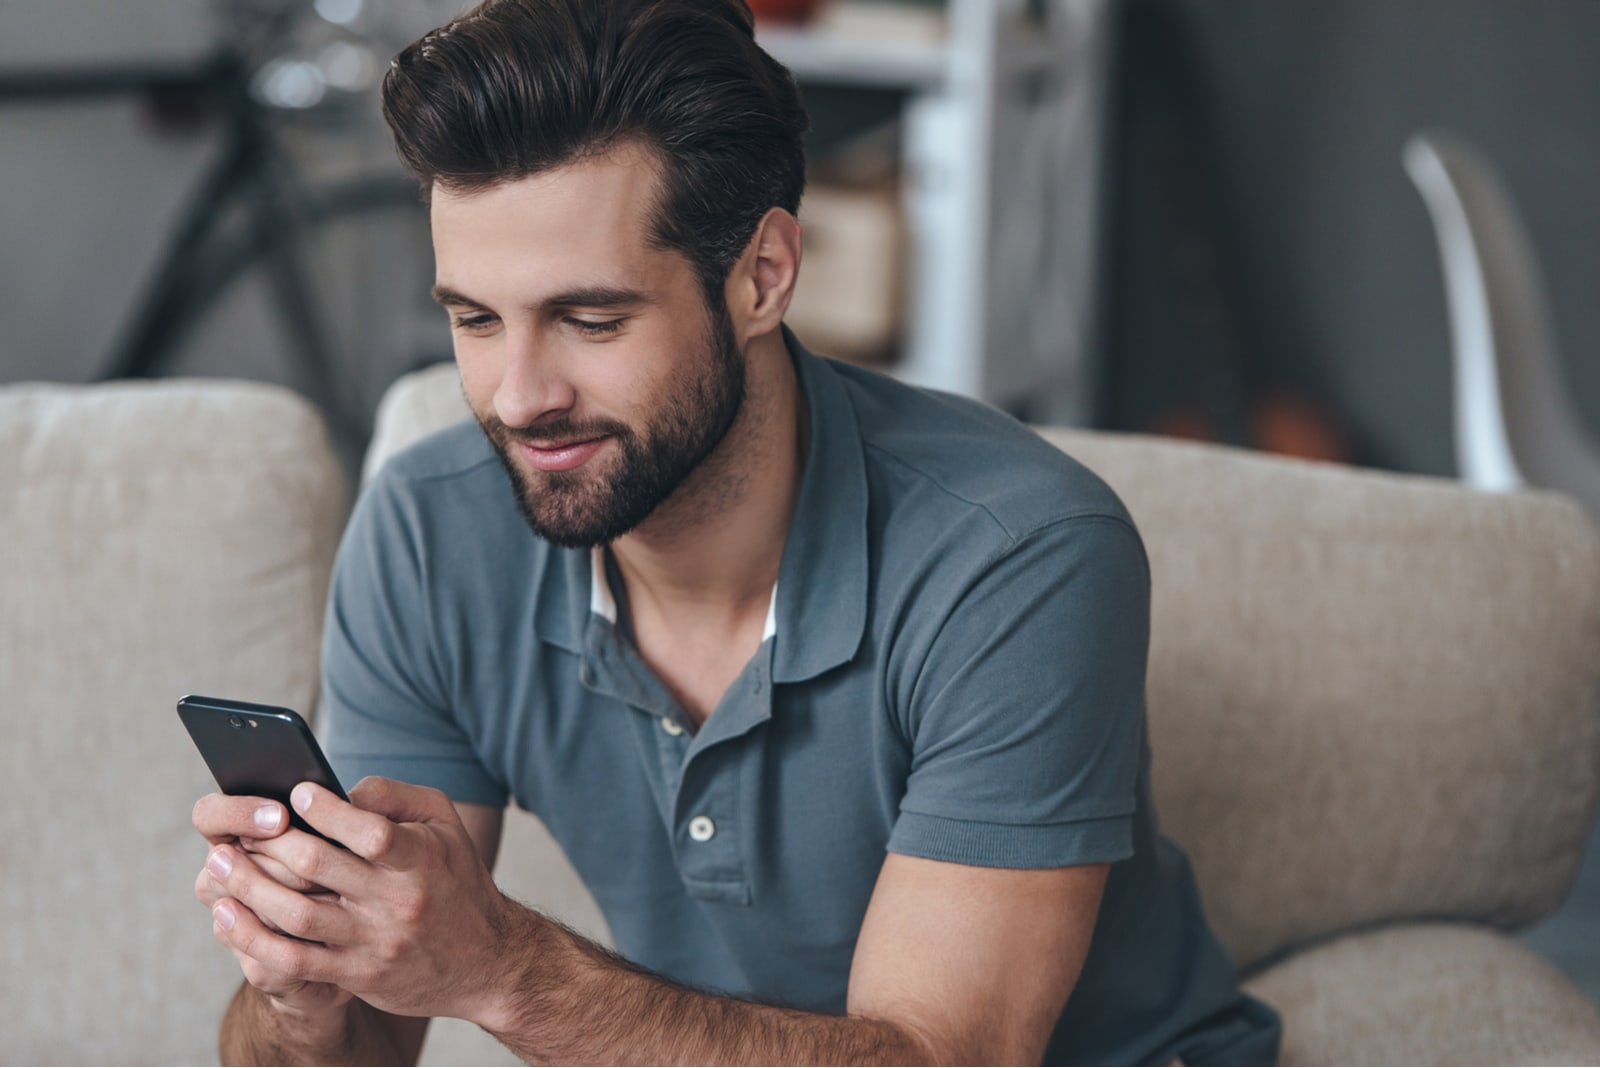 the man sits and holds the phone in his hand